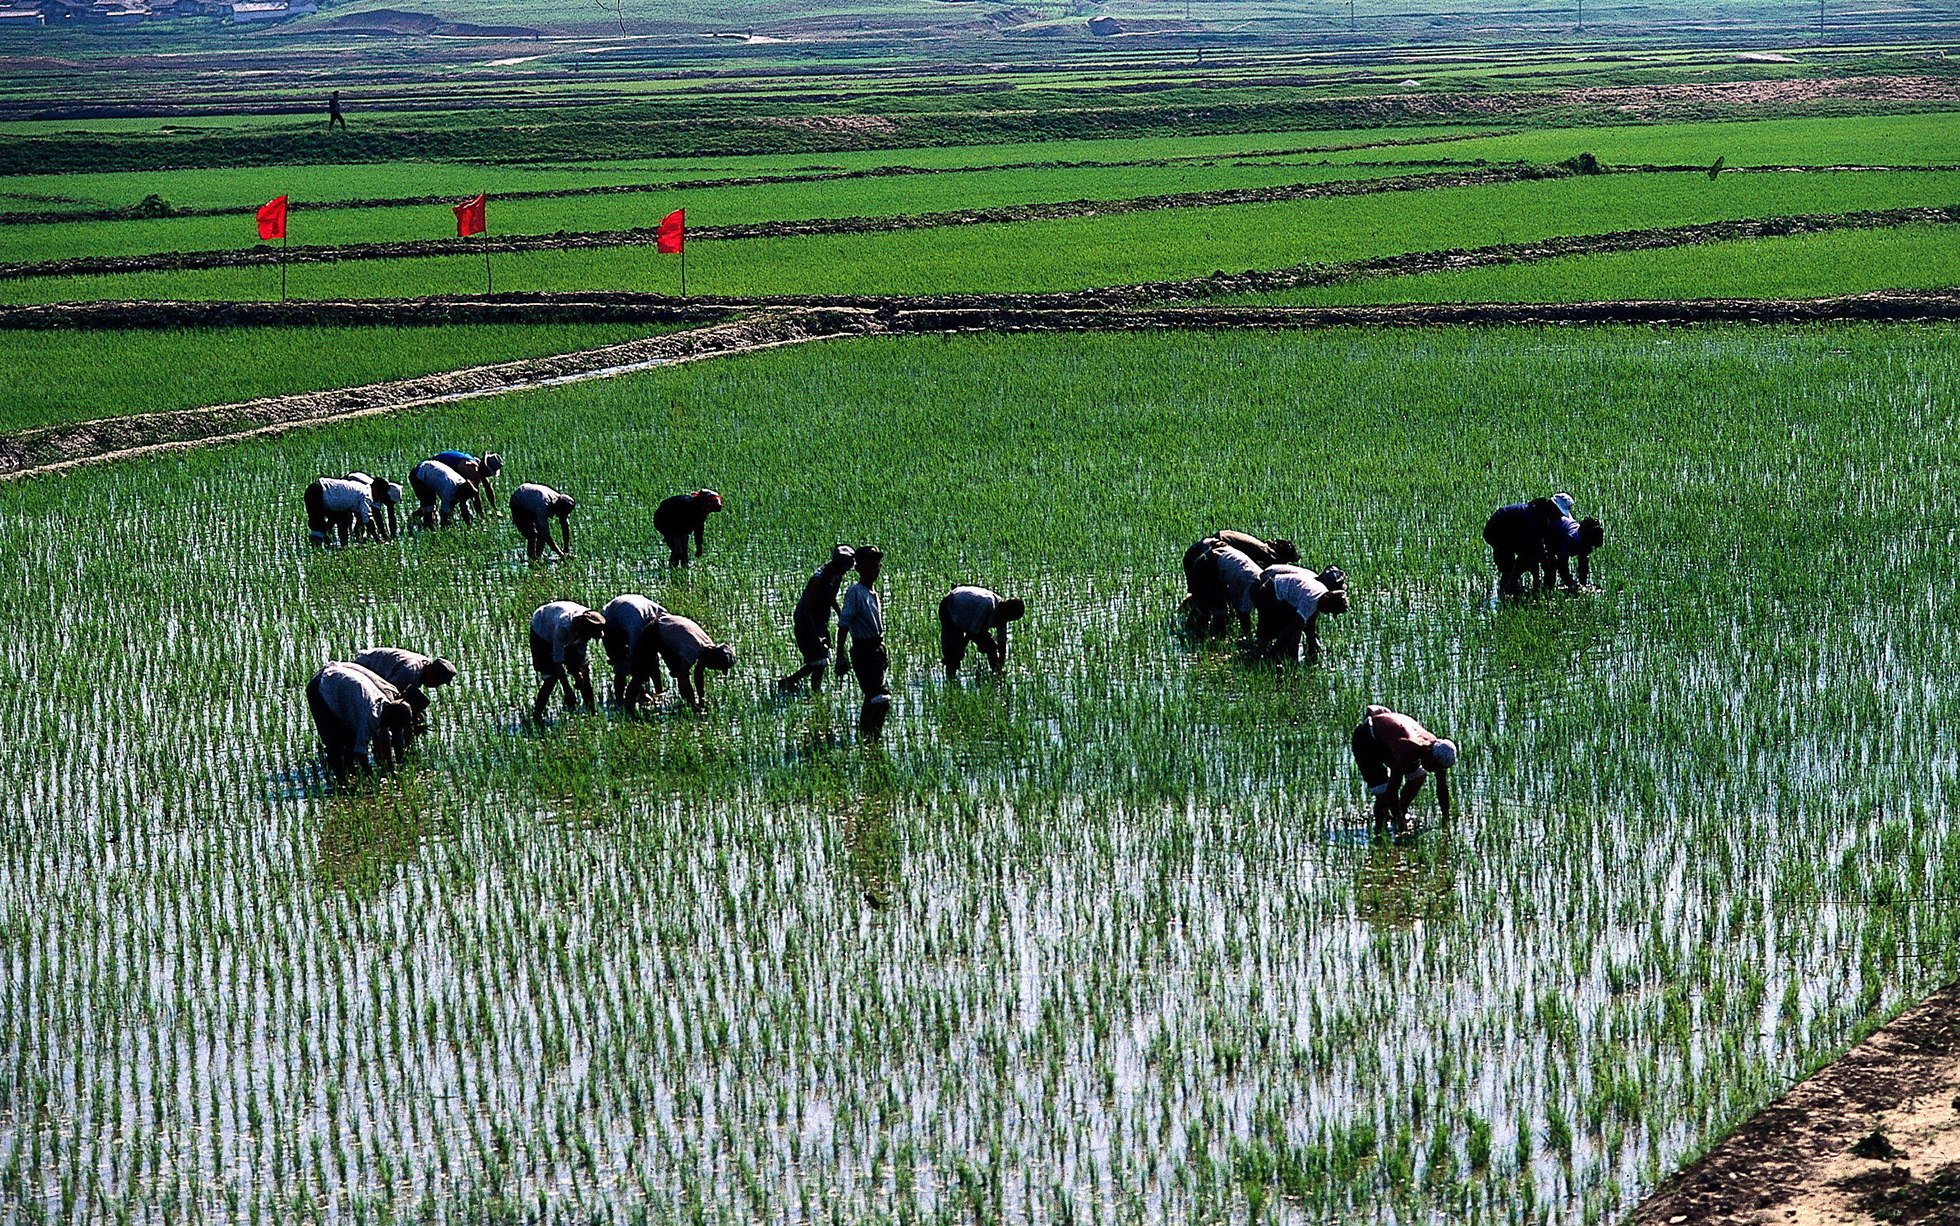 North Korean rice paddies